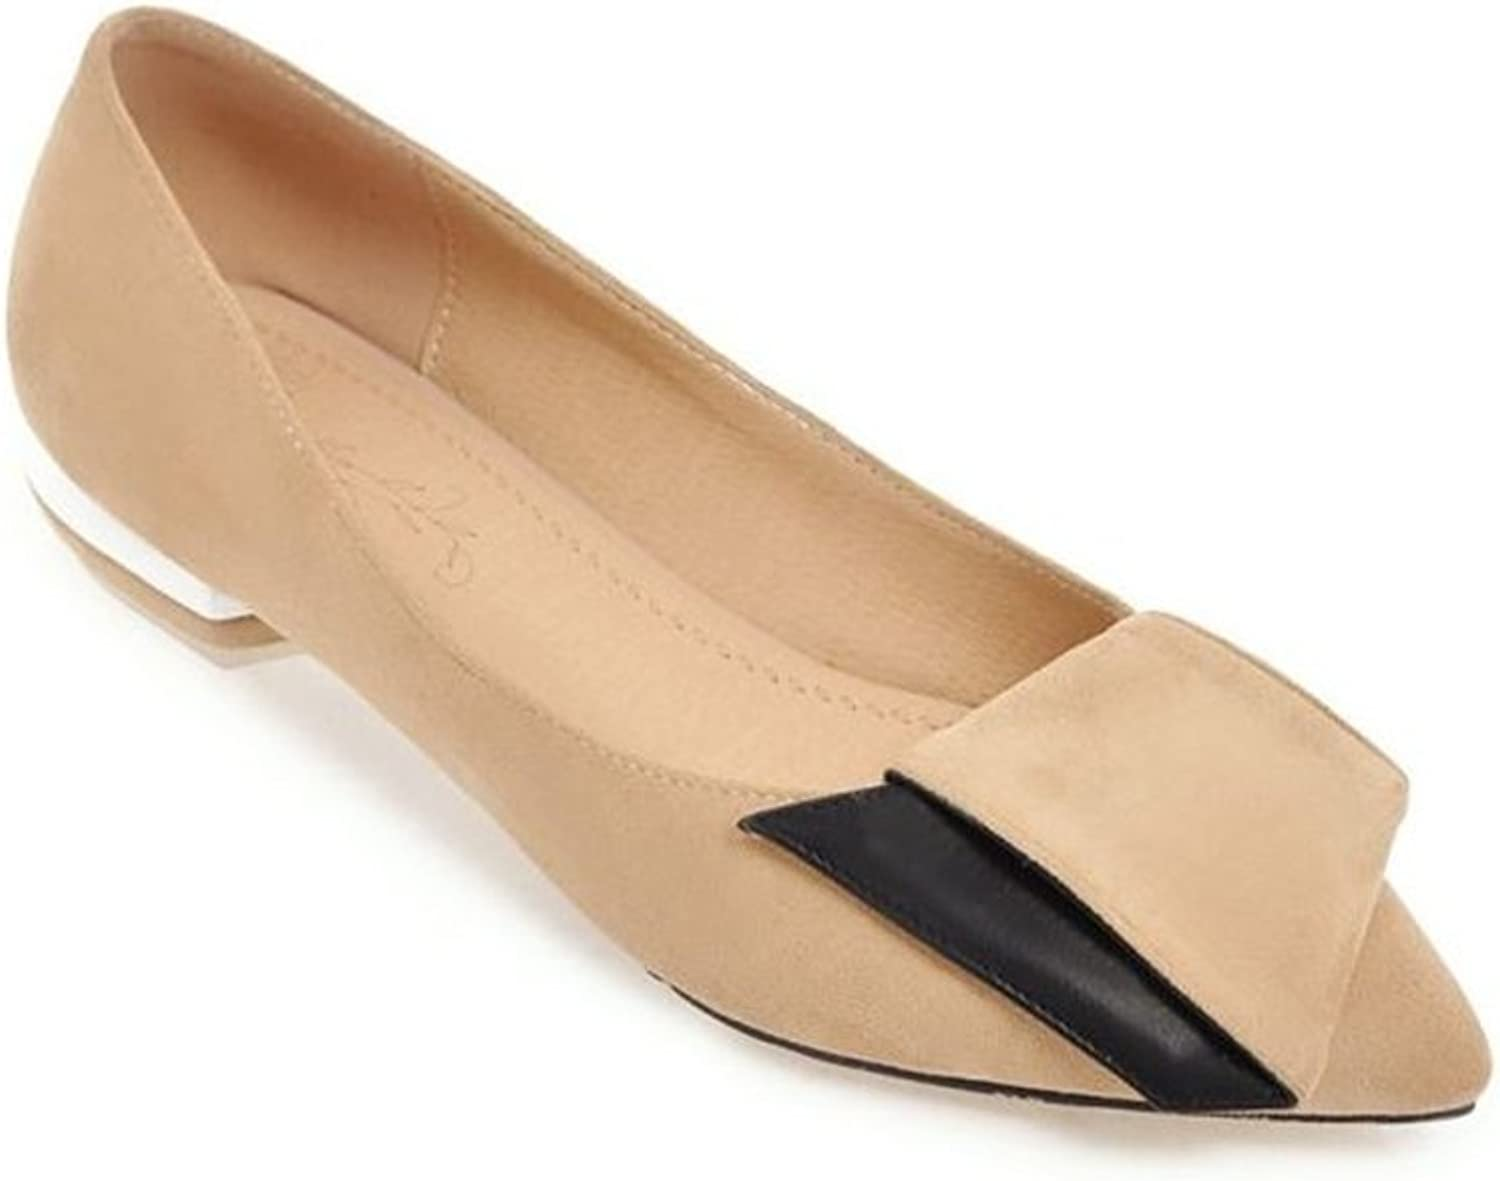 Fancyww Women's Classic Pointy Toe Ballet Flat Comfort Soft Suede Ballerina Office shoes